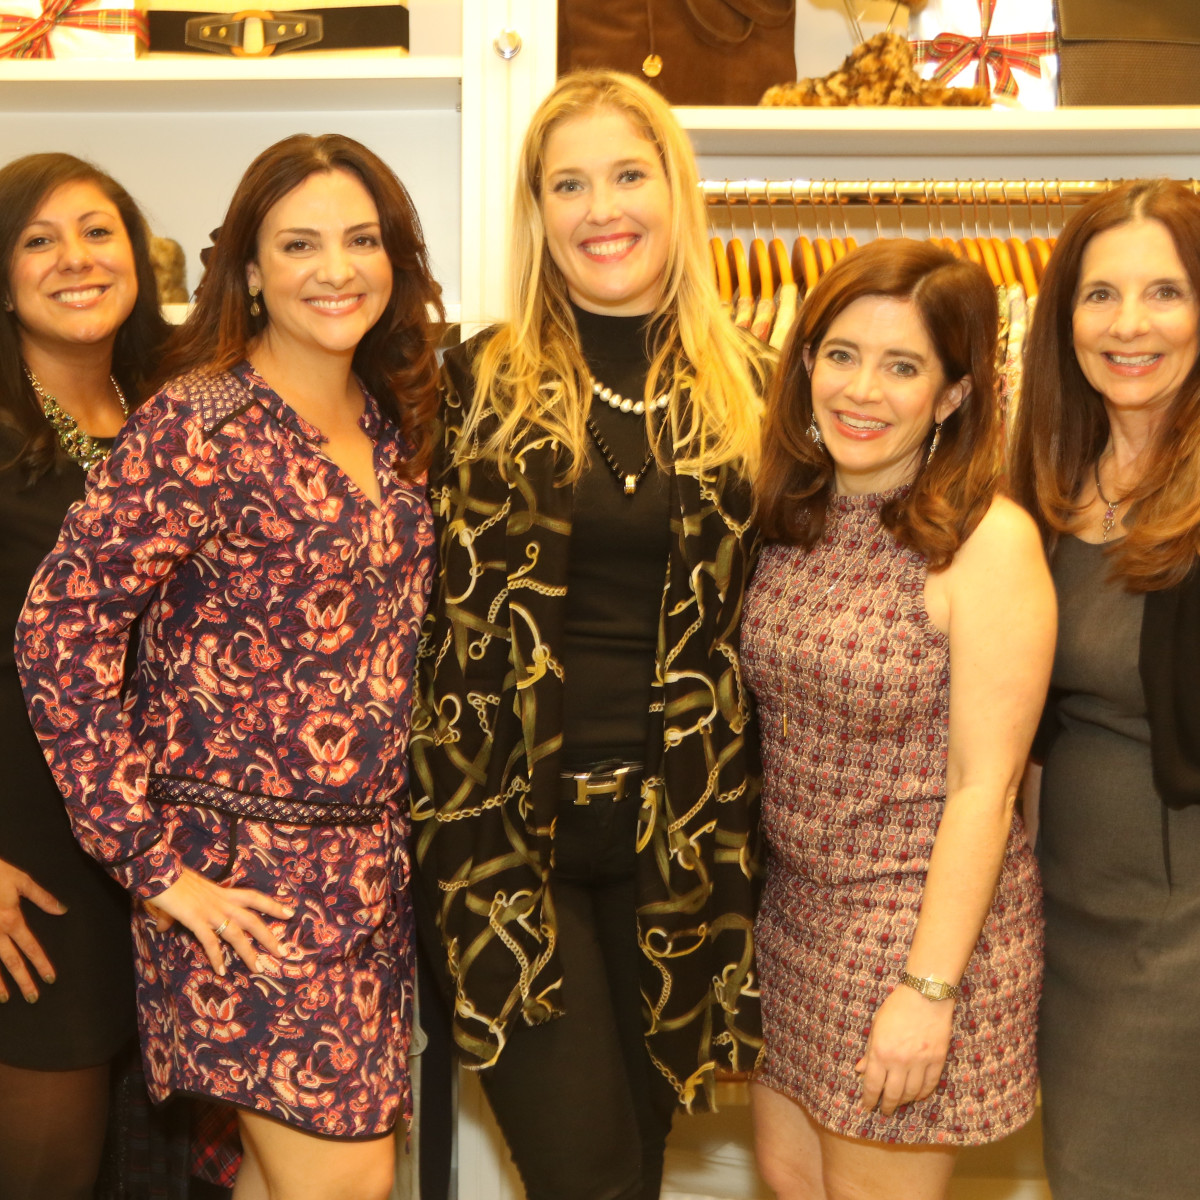 News, Ellevate Network party, Dec. 2015, Bianca Ferrer, Jessica Nicolayevsky, Jennifer Roosth, Mathilde Leary, Luanne Jones.